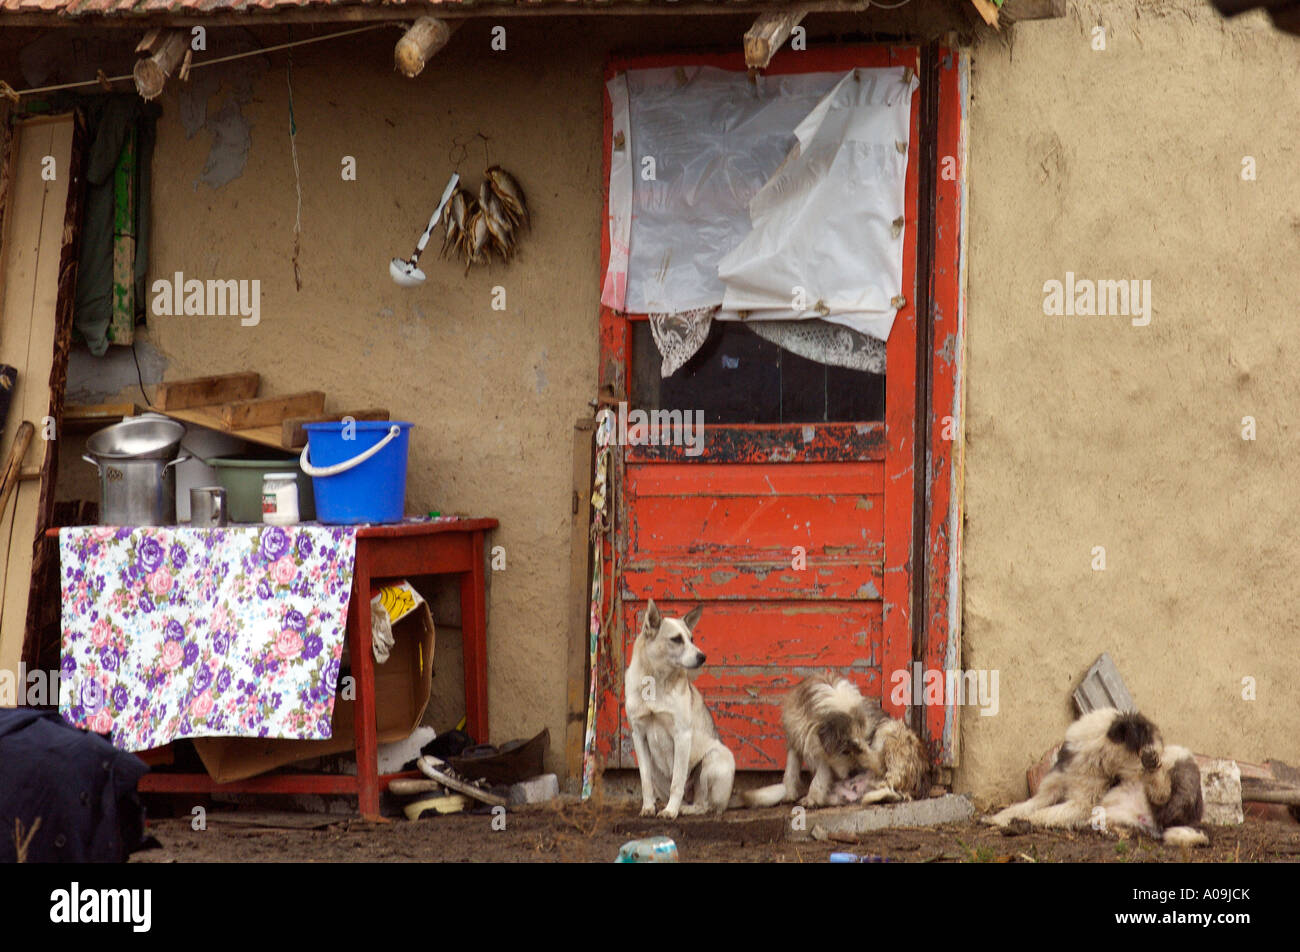 Romani Gipsy community village in the district of Spantov, southeastern Romania. Stock Photo